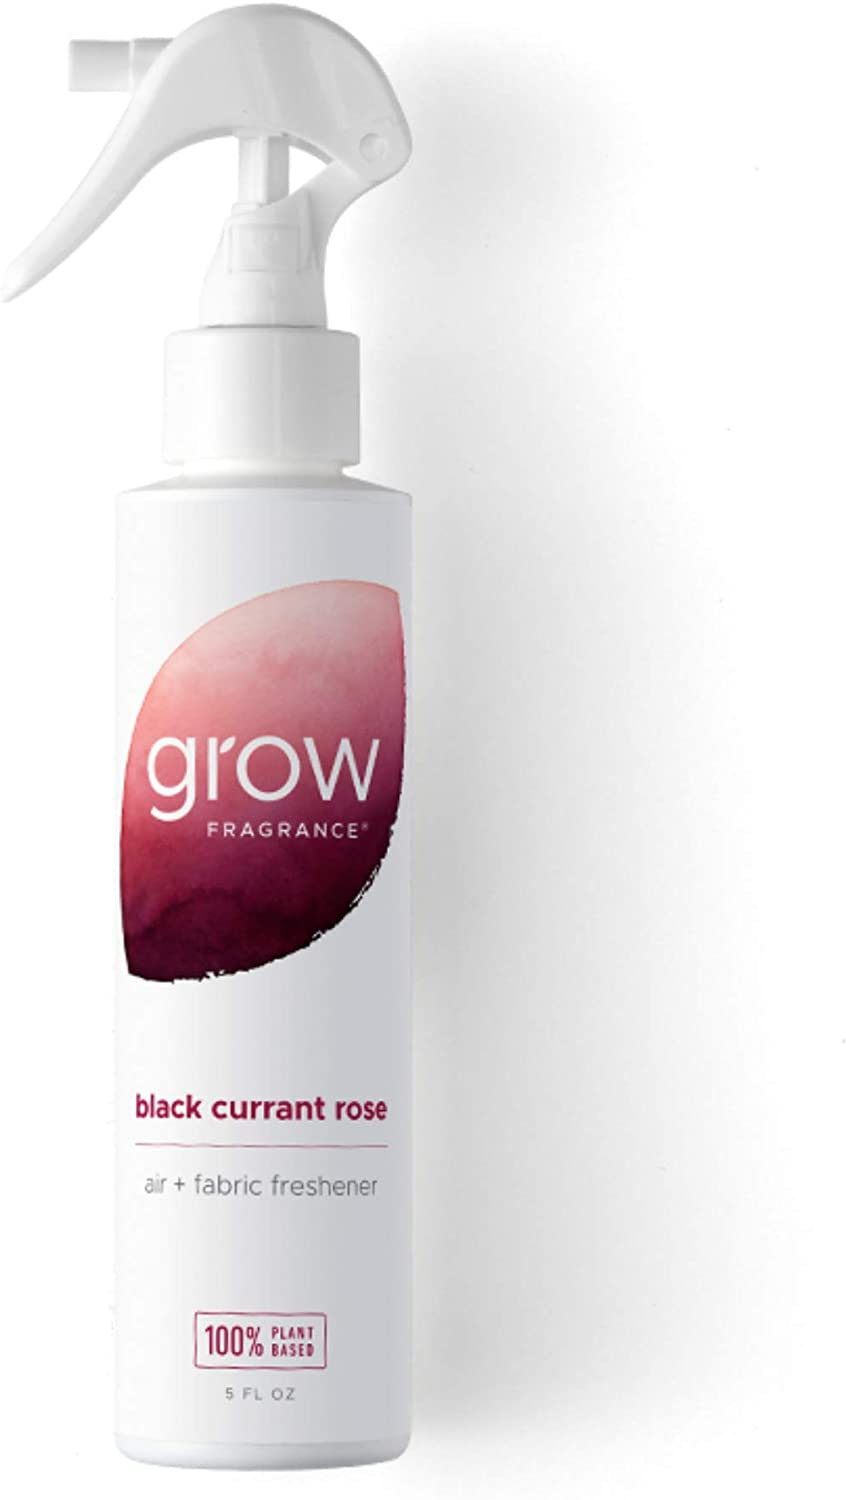 Grow Fragrance - Certified 100% Plant Based Air Freshener + Fabric Freshener Spray, Made with All Natural Essential Oils, Black Currant Rose - Limited Edition!